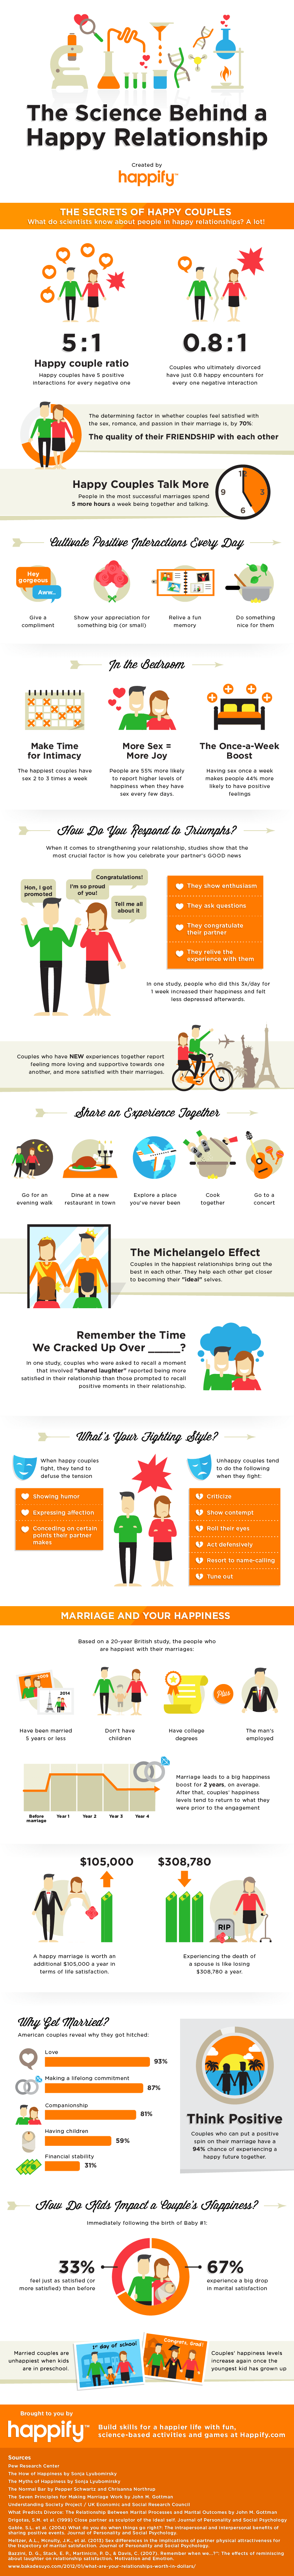 It's All in the Numbers: The Statistics of Happy Relationships - Infographic